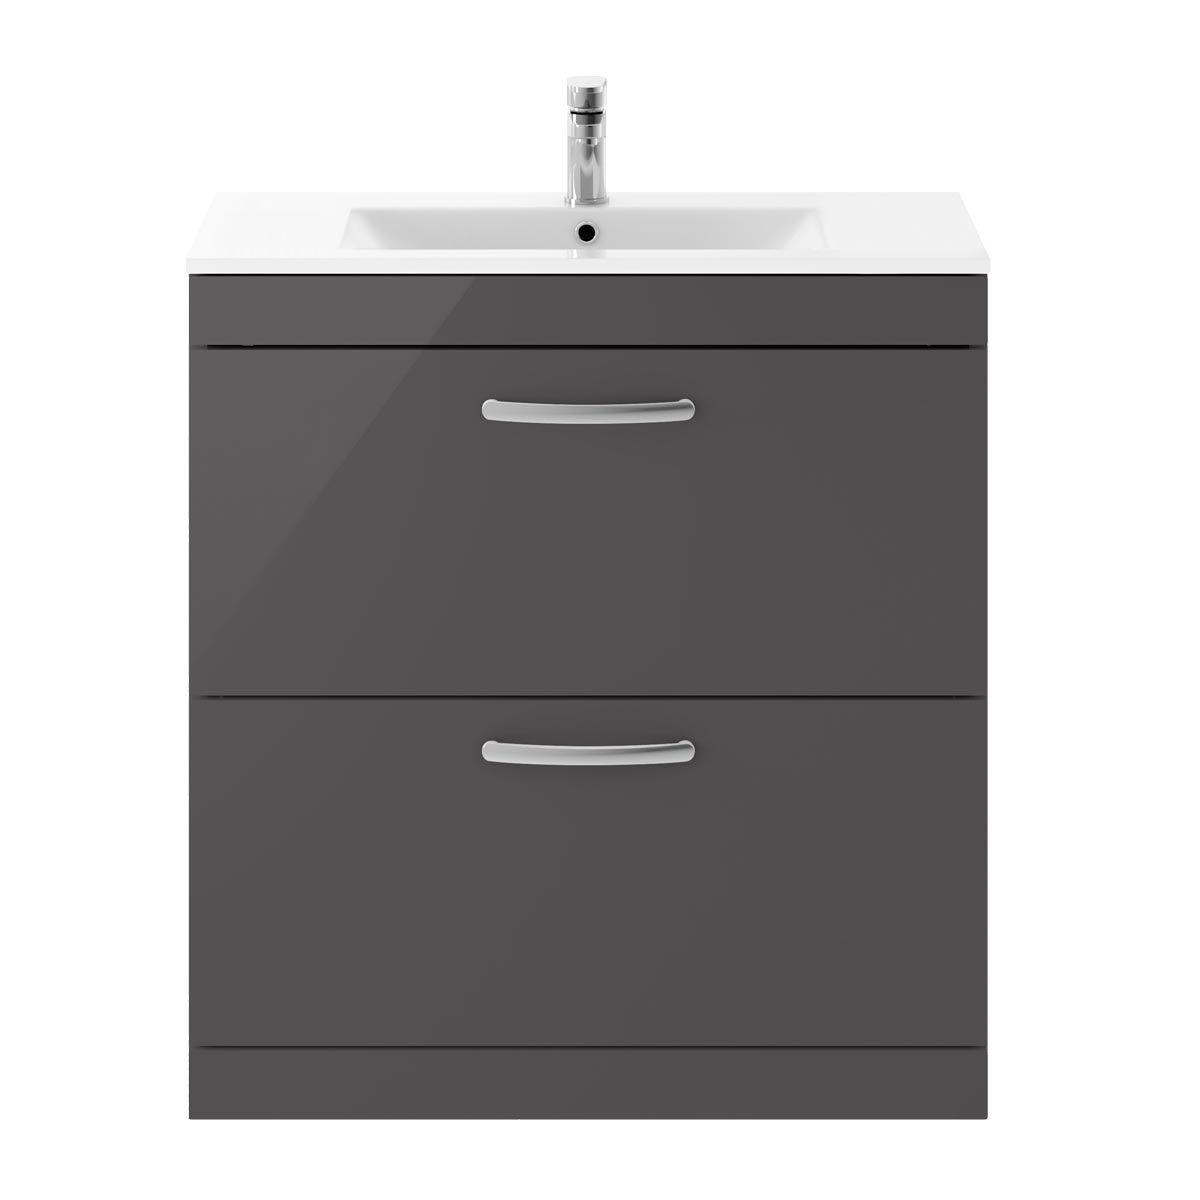 Nuie Athena Gloss Grey 2 Drawer Floor Standing Vanity Unit with 18mm Profile Basin 800mm